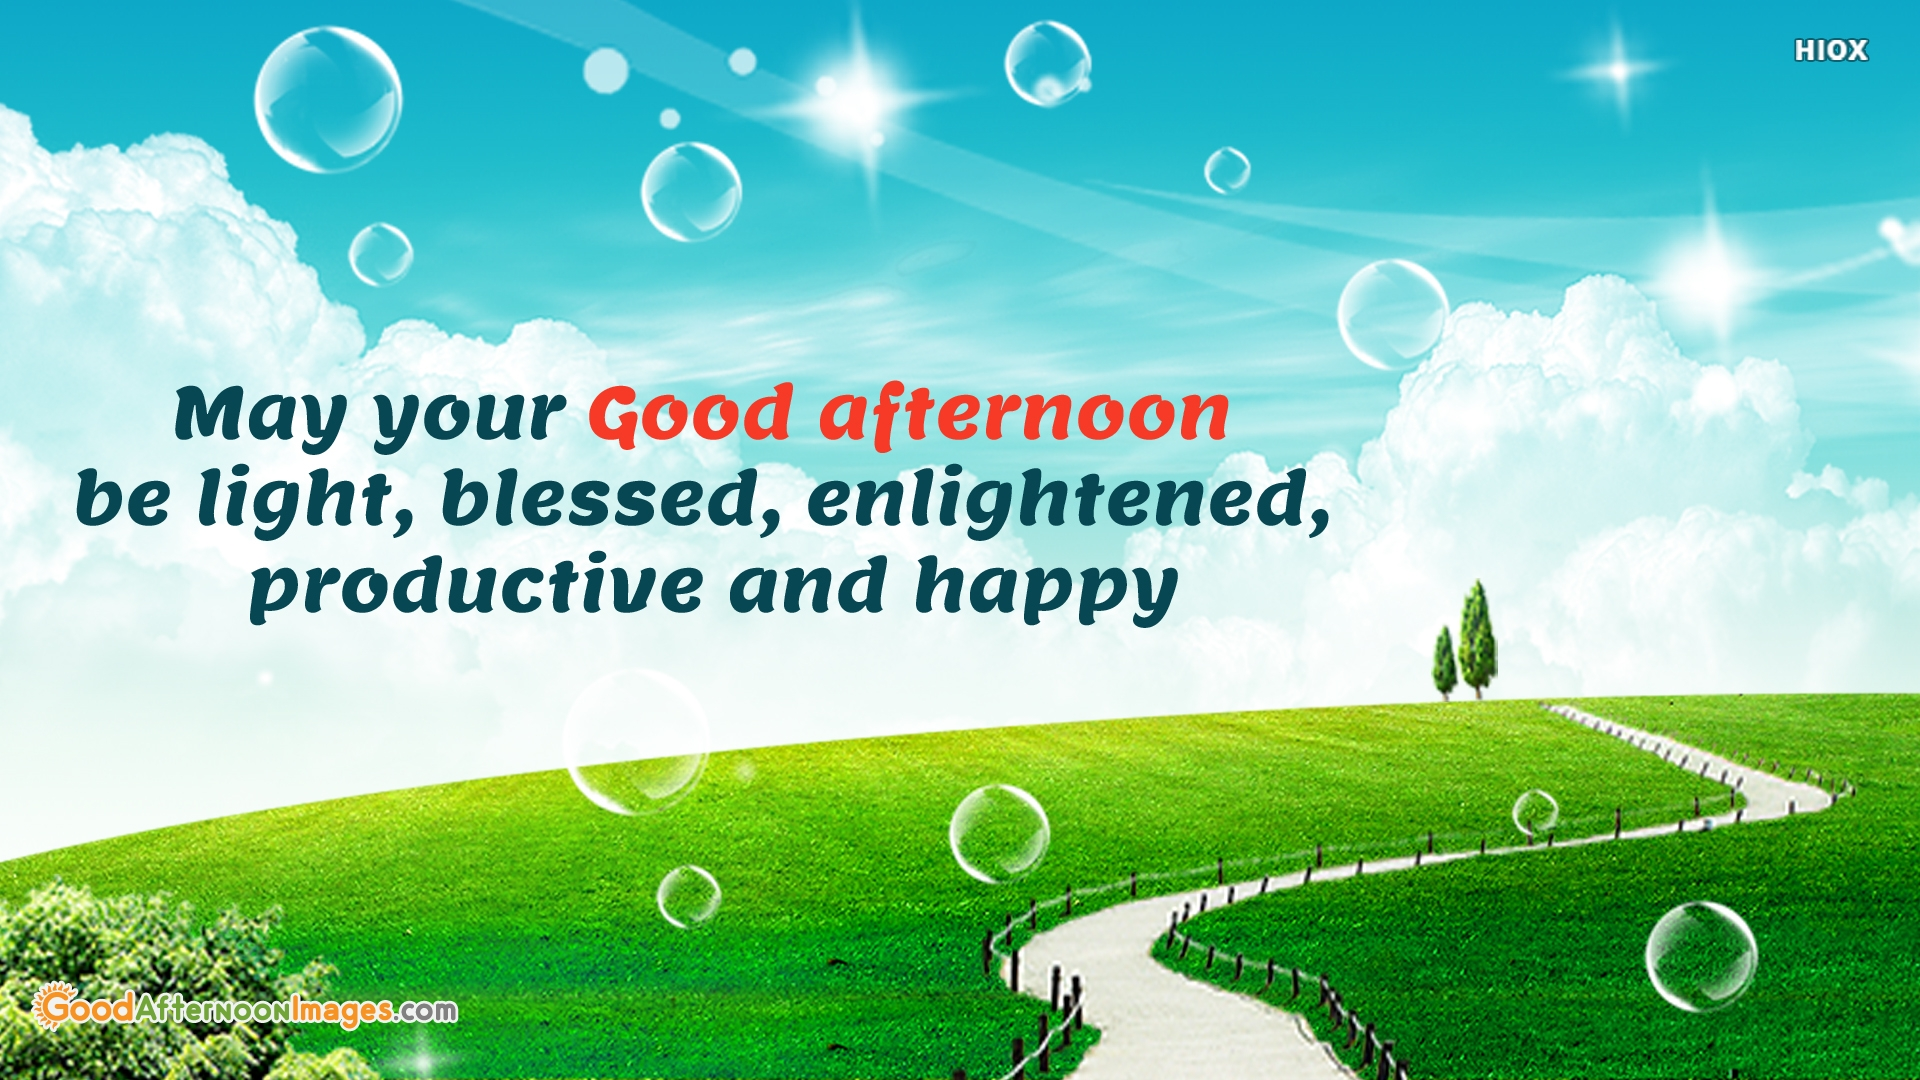 May Your Good Afternoon Be Light, Blessed, Enlightened, Productive and Happy.